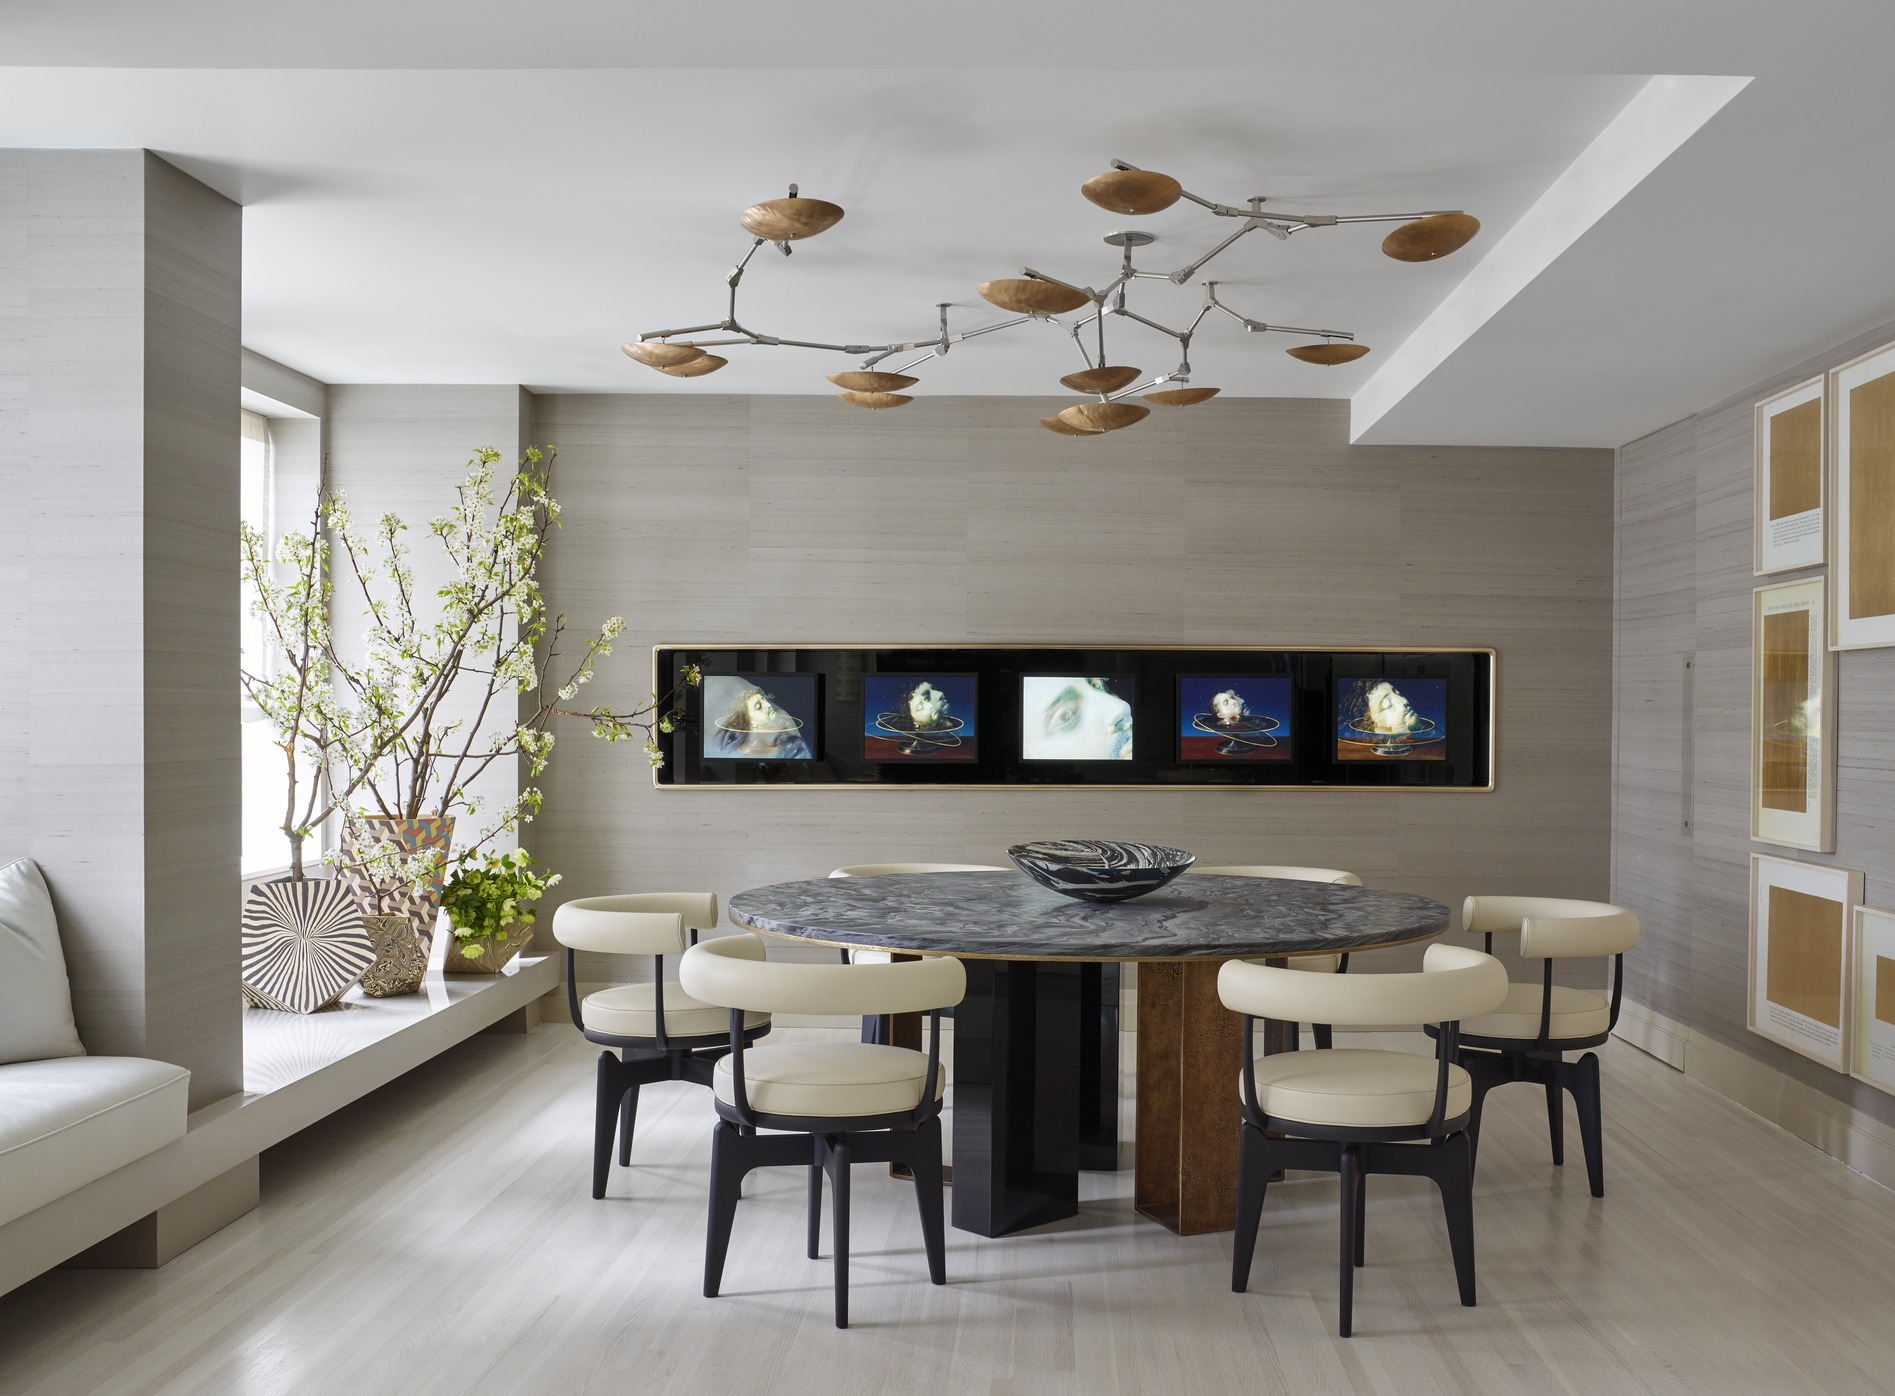 contemporary decorating ideas ... glamorous modern dining room design 2 25 decorating ideas contemporary QPEXHCP